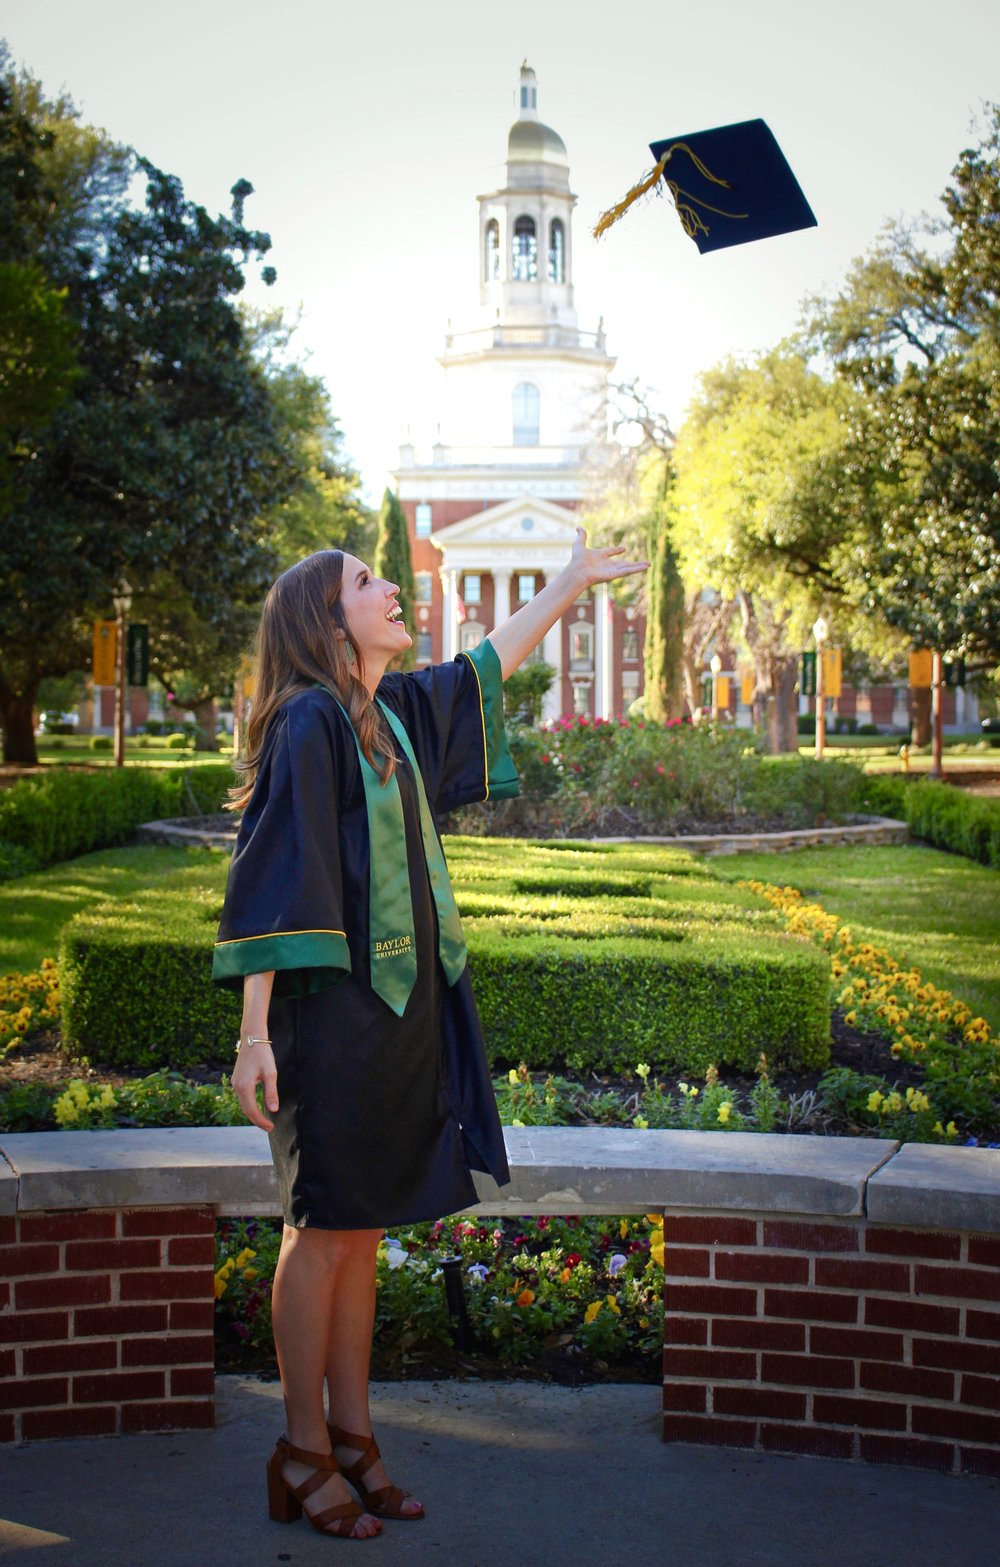 Hayley Hartwick last year at her graduation from Baylor University. (Kerri Hartwick Doughty)